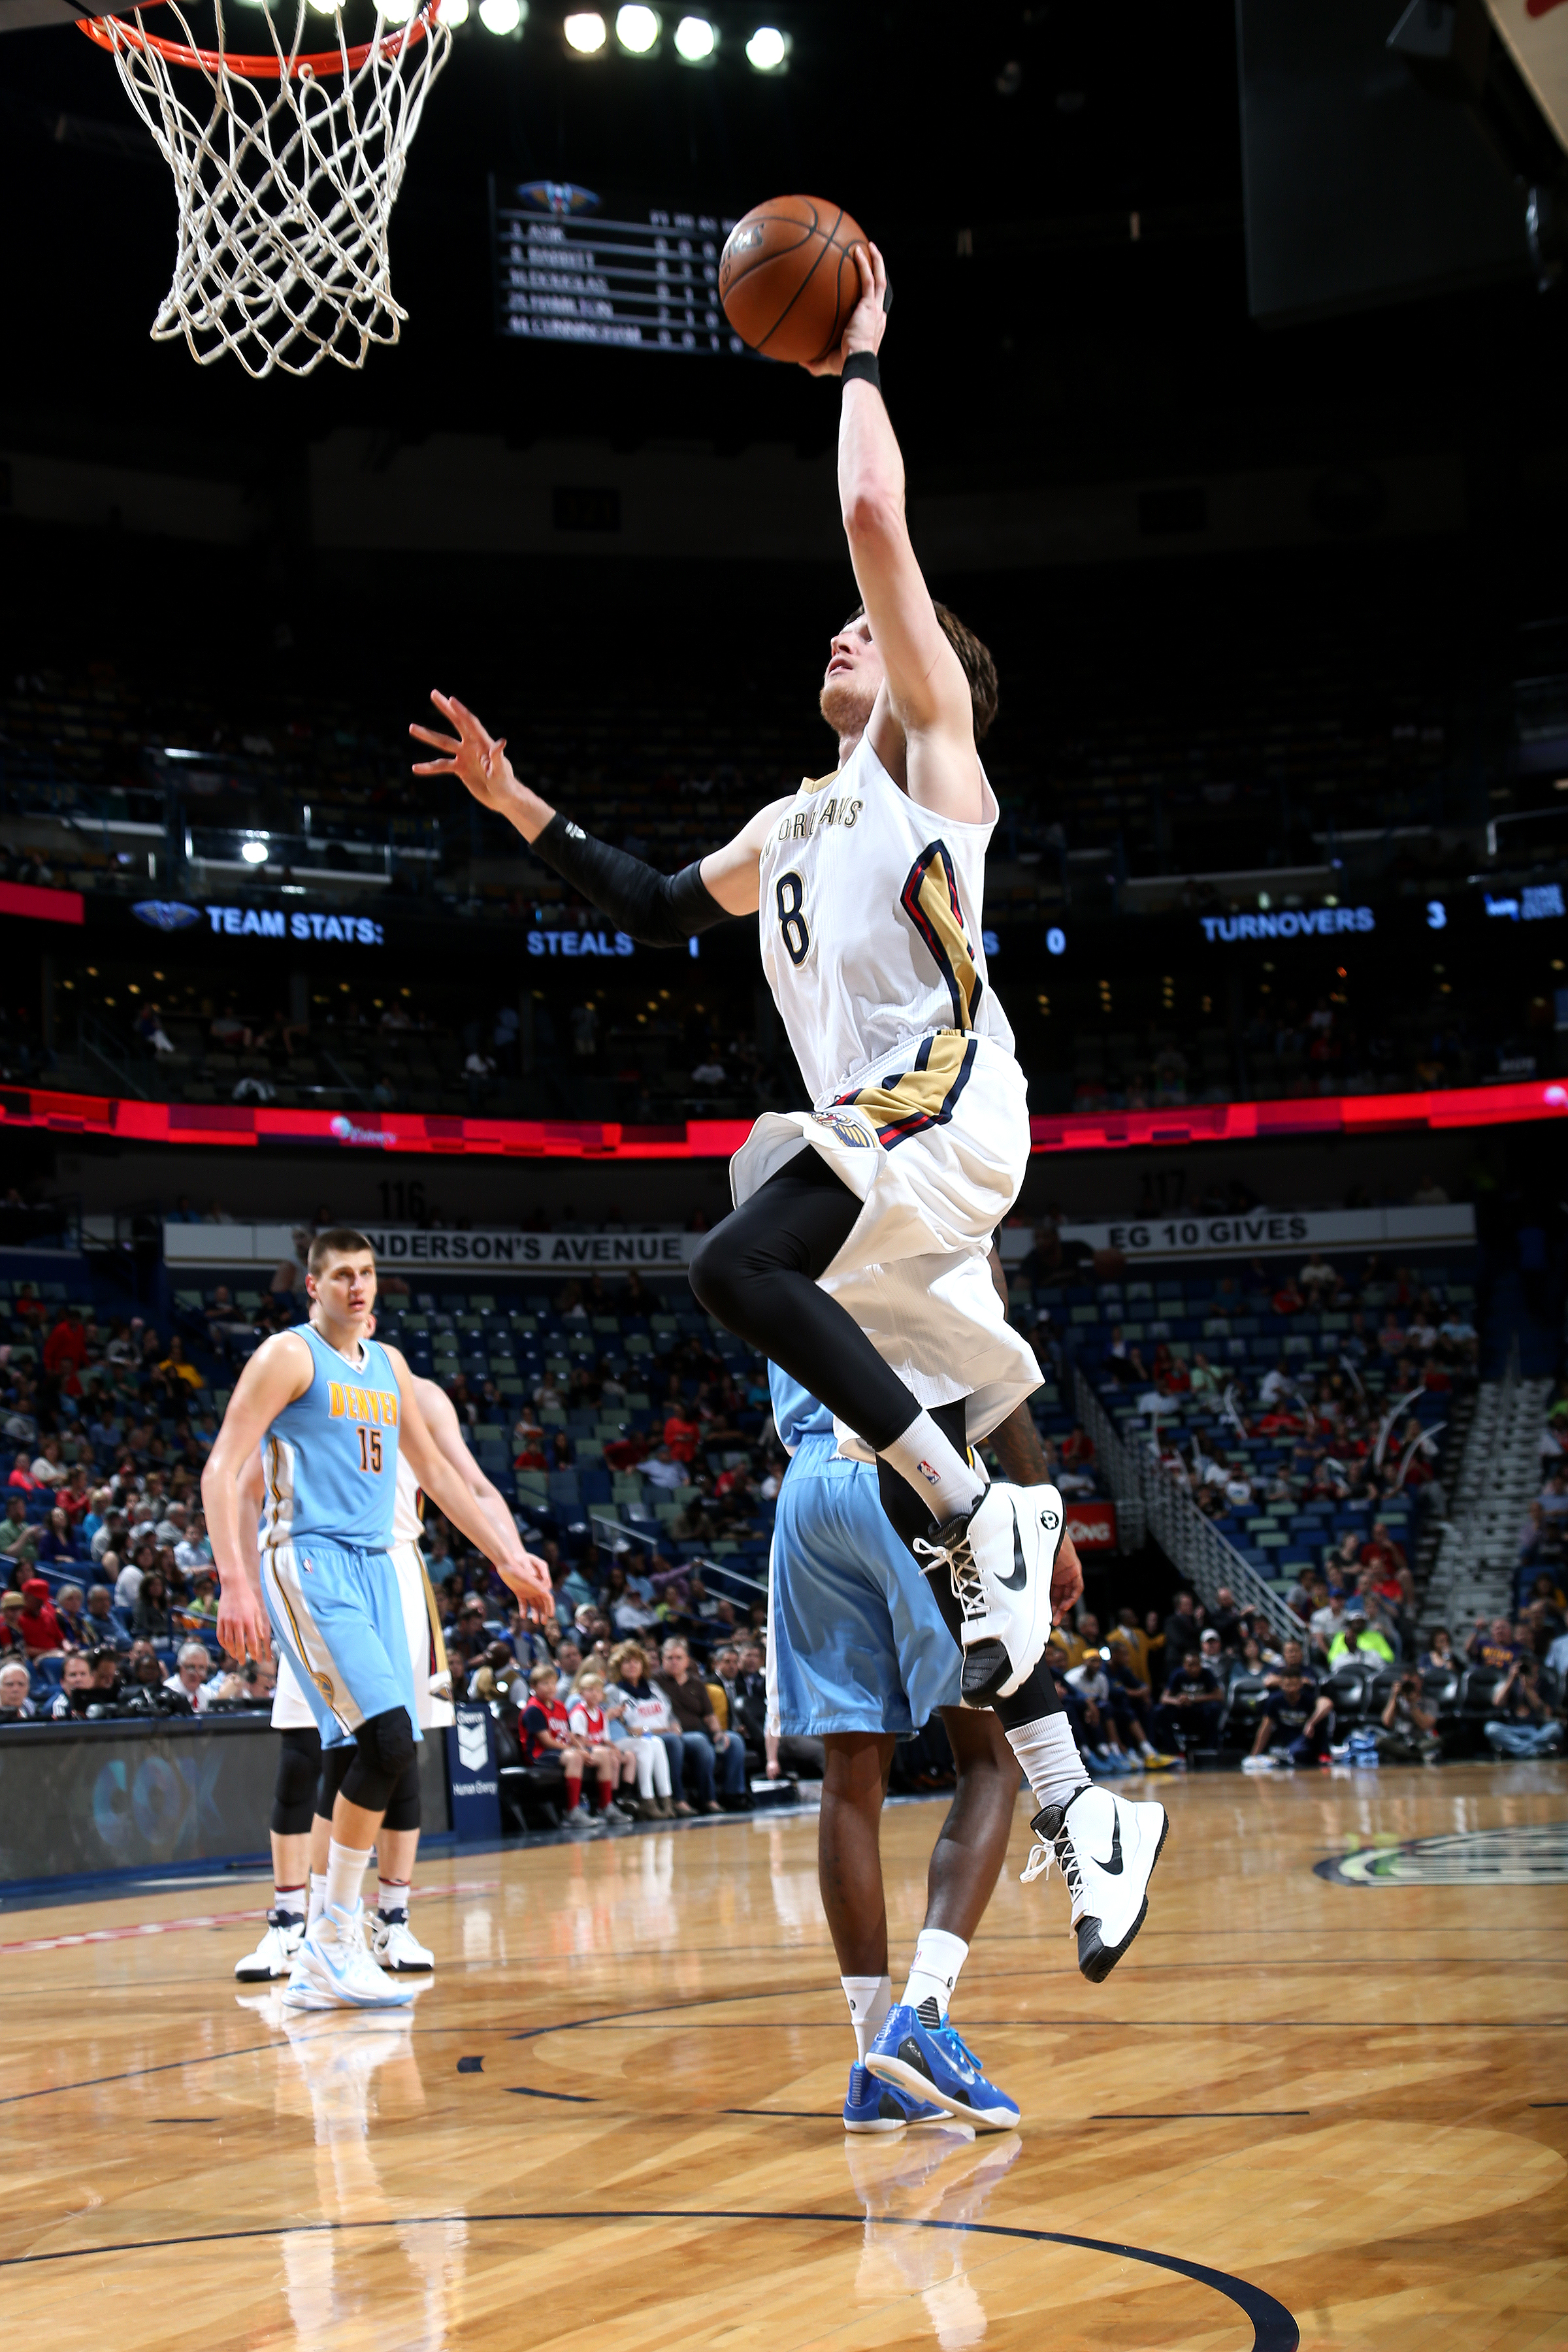 NEW ORLEANS, LA - MARCH 31: Luke Babbitt #8 of the New Orleans Pelicans goes for the lay up during the game against the Denver Nuggets on March 31, 2016 at the Smoothie King Center in New Orleans, Louisiana. (Photo by Layne Murdoch Jr./NBAE via Getty Imag